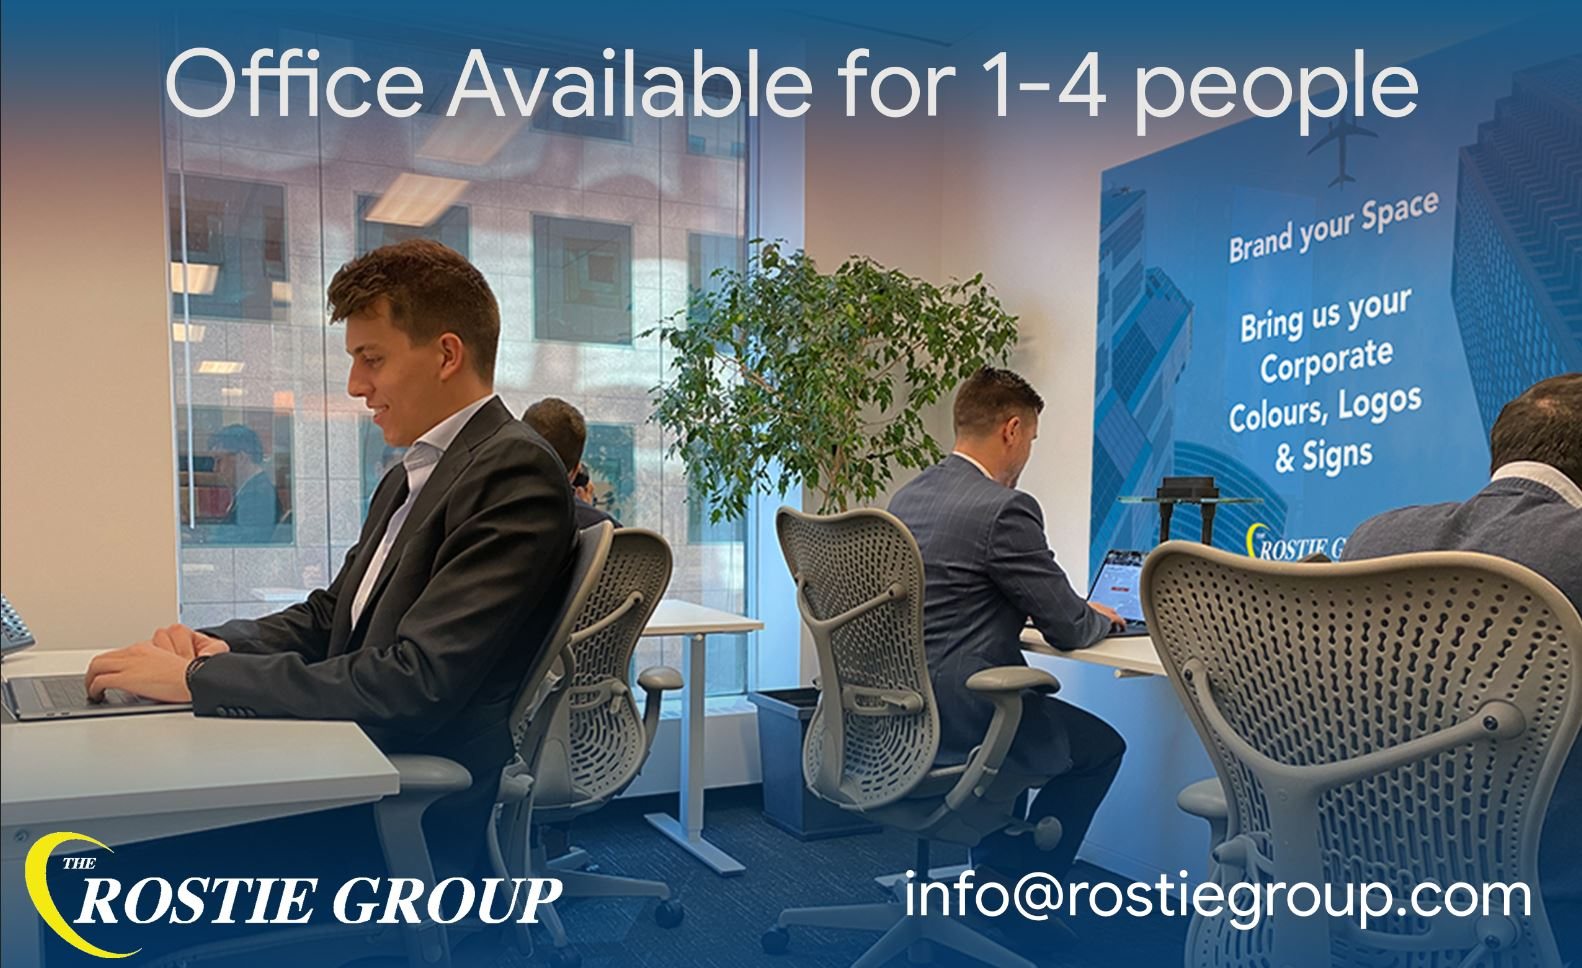 Rostie Group December Scoop Available Offices Ad